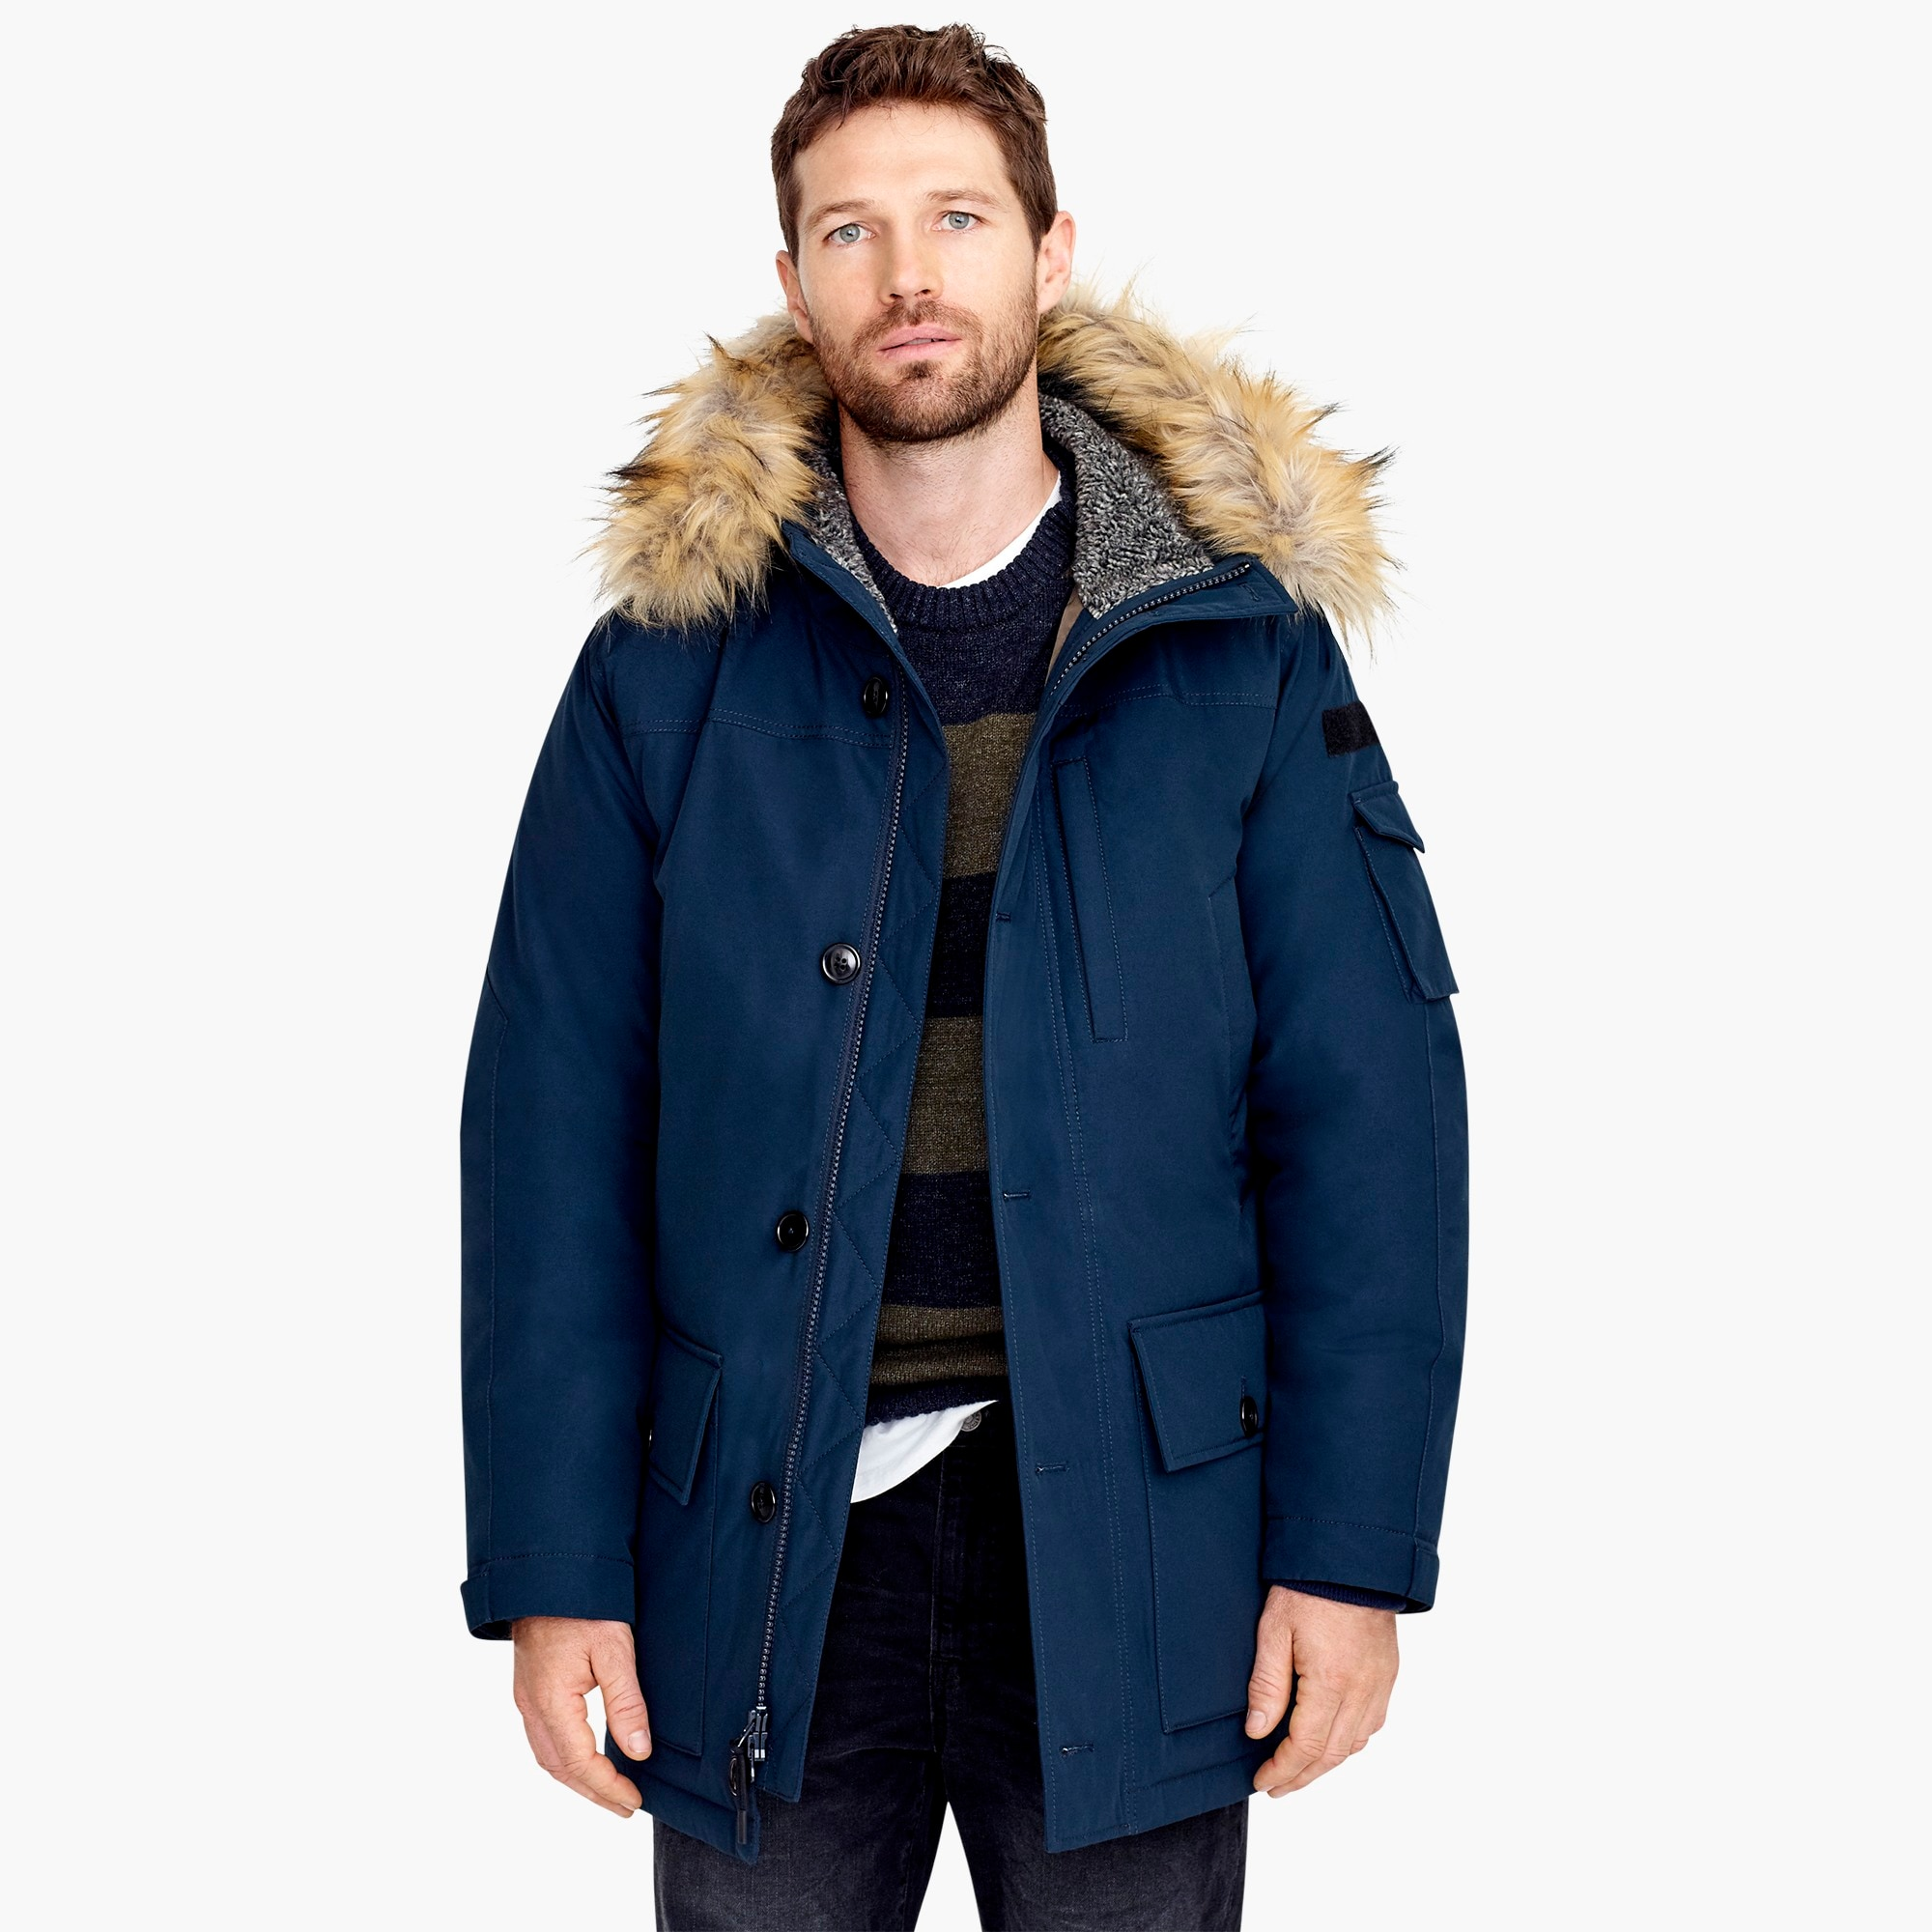 Nordic down parka men coats & jackets c